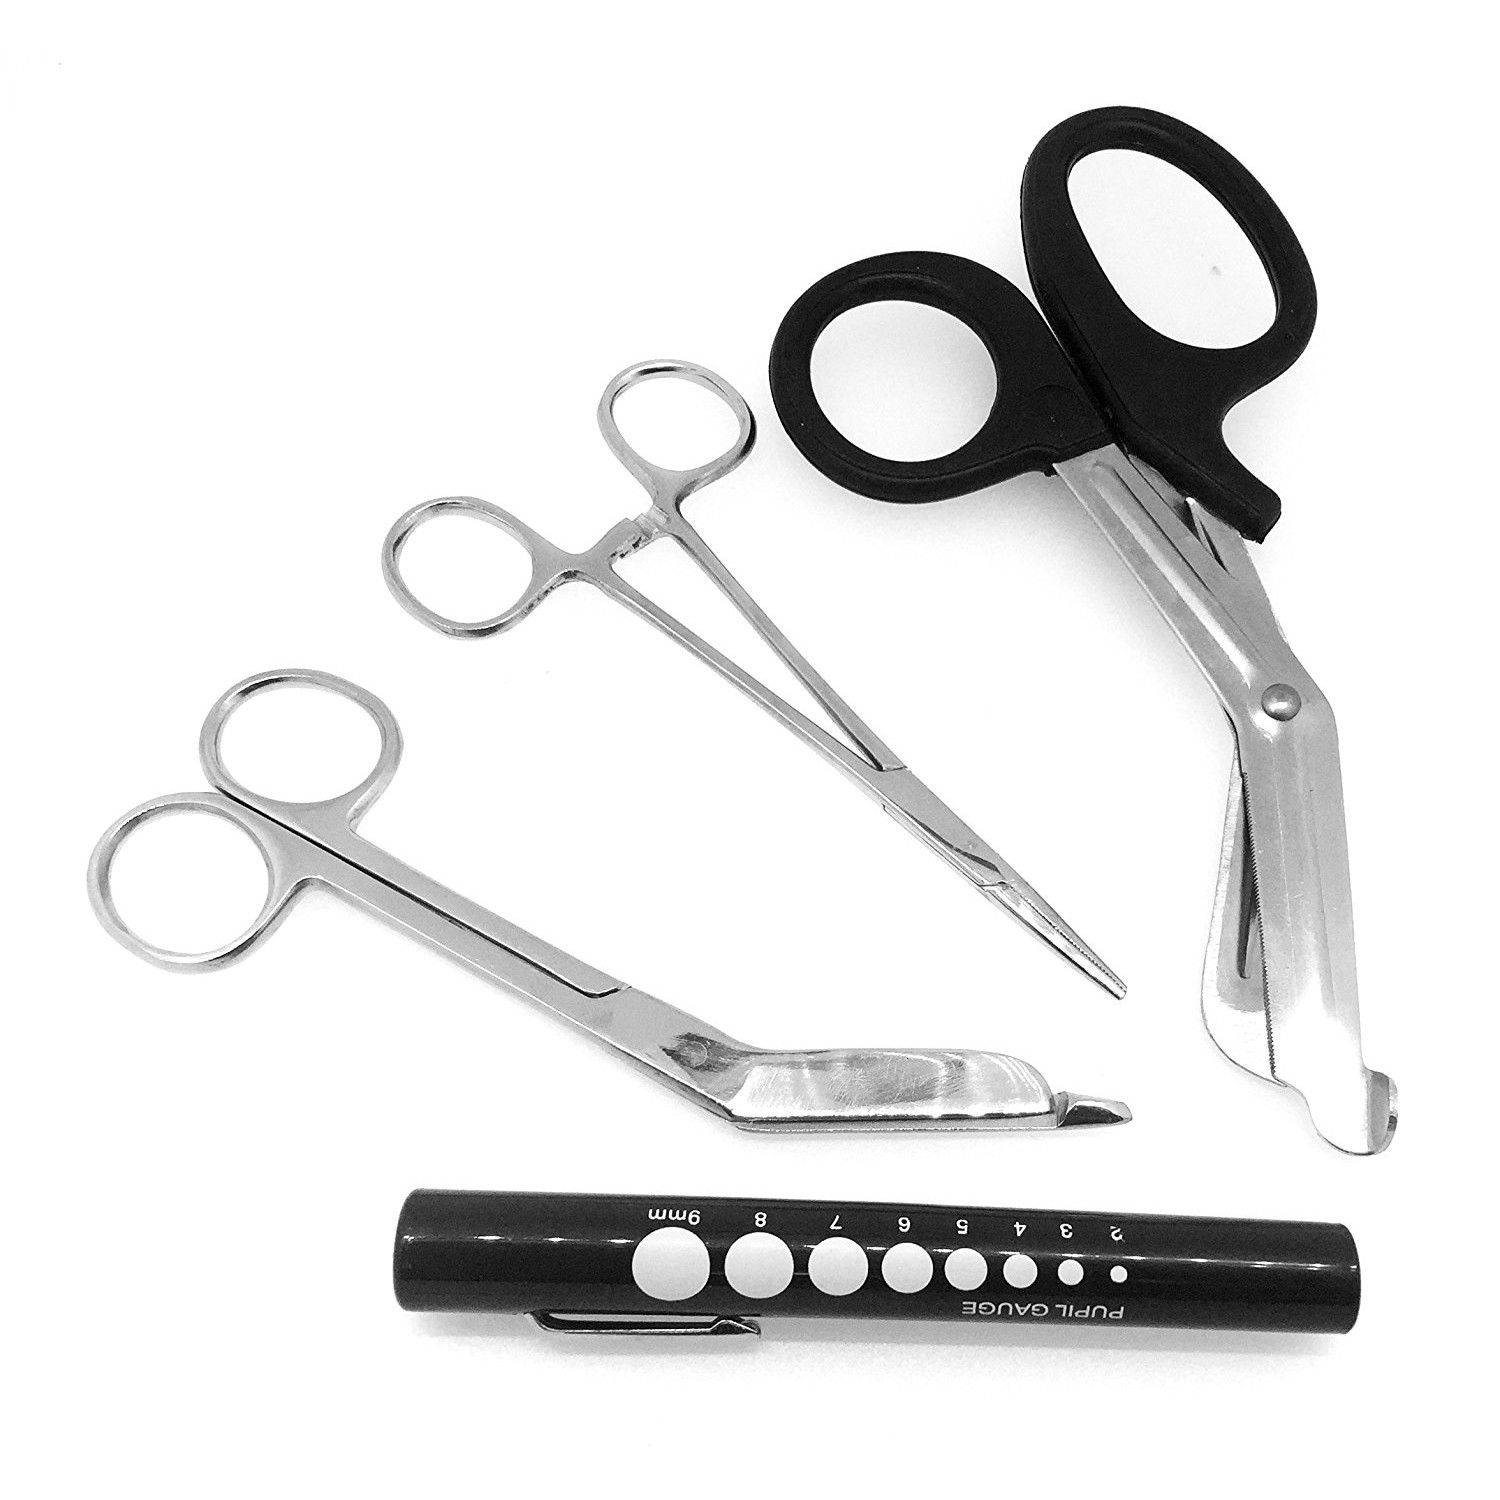 EMT/ Paramedic Tools with Medical Bandage Scissors and Shears + Penlight